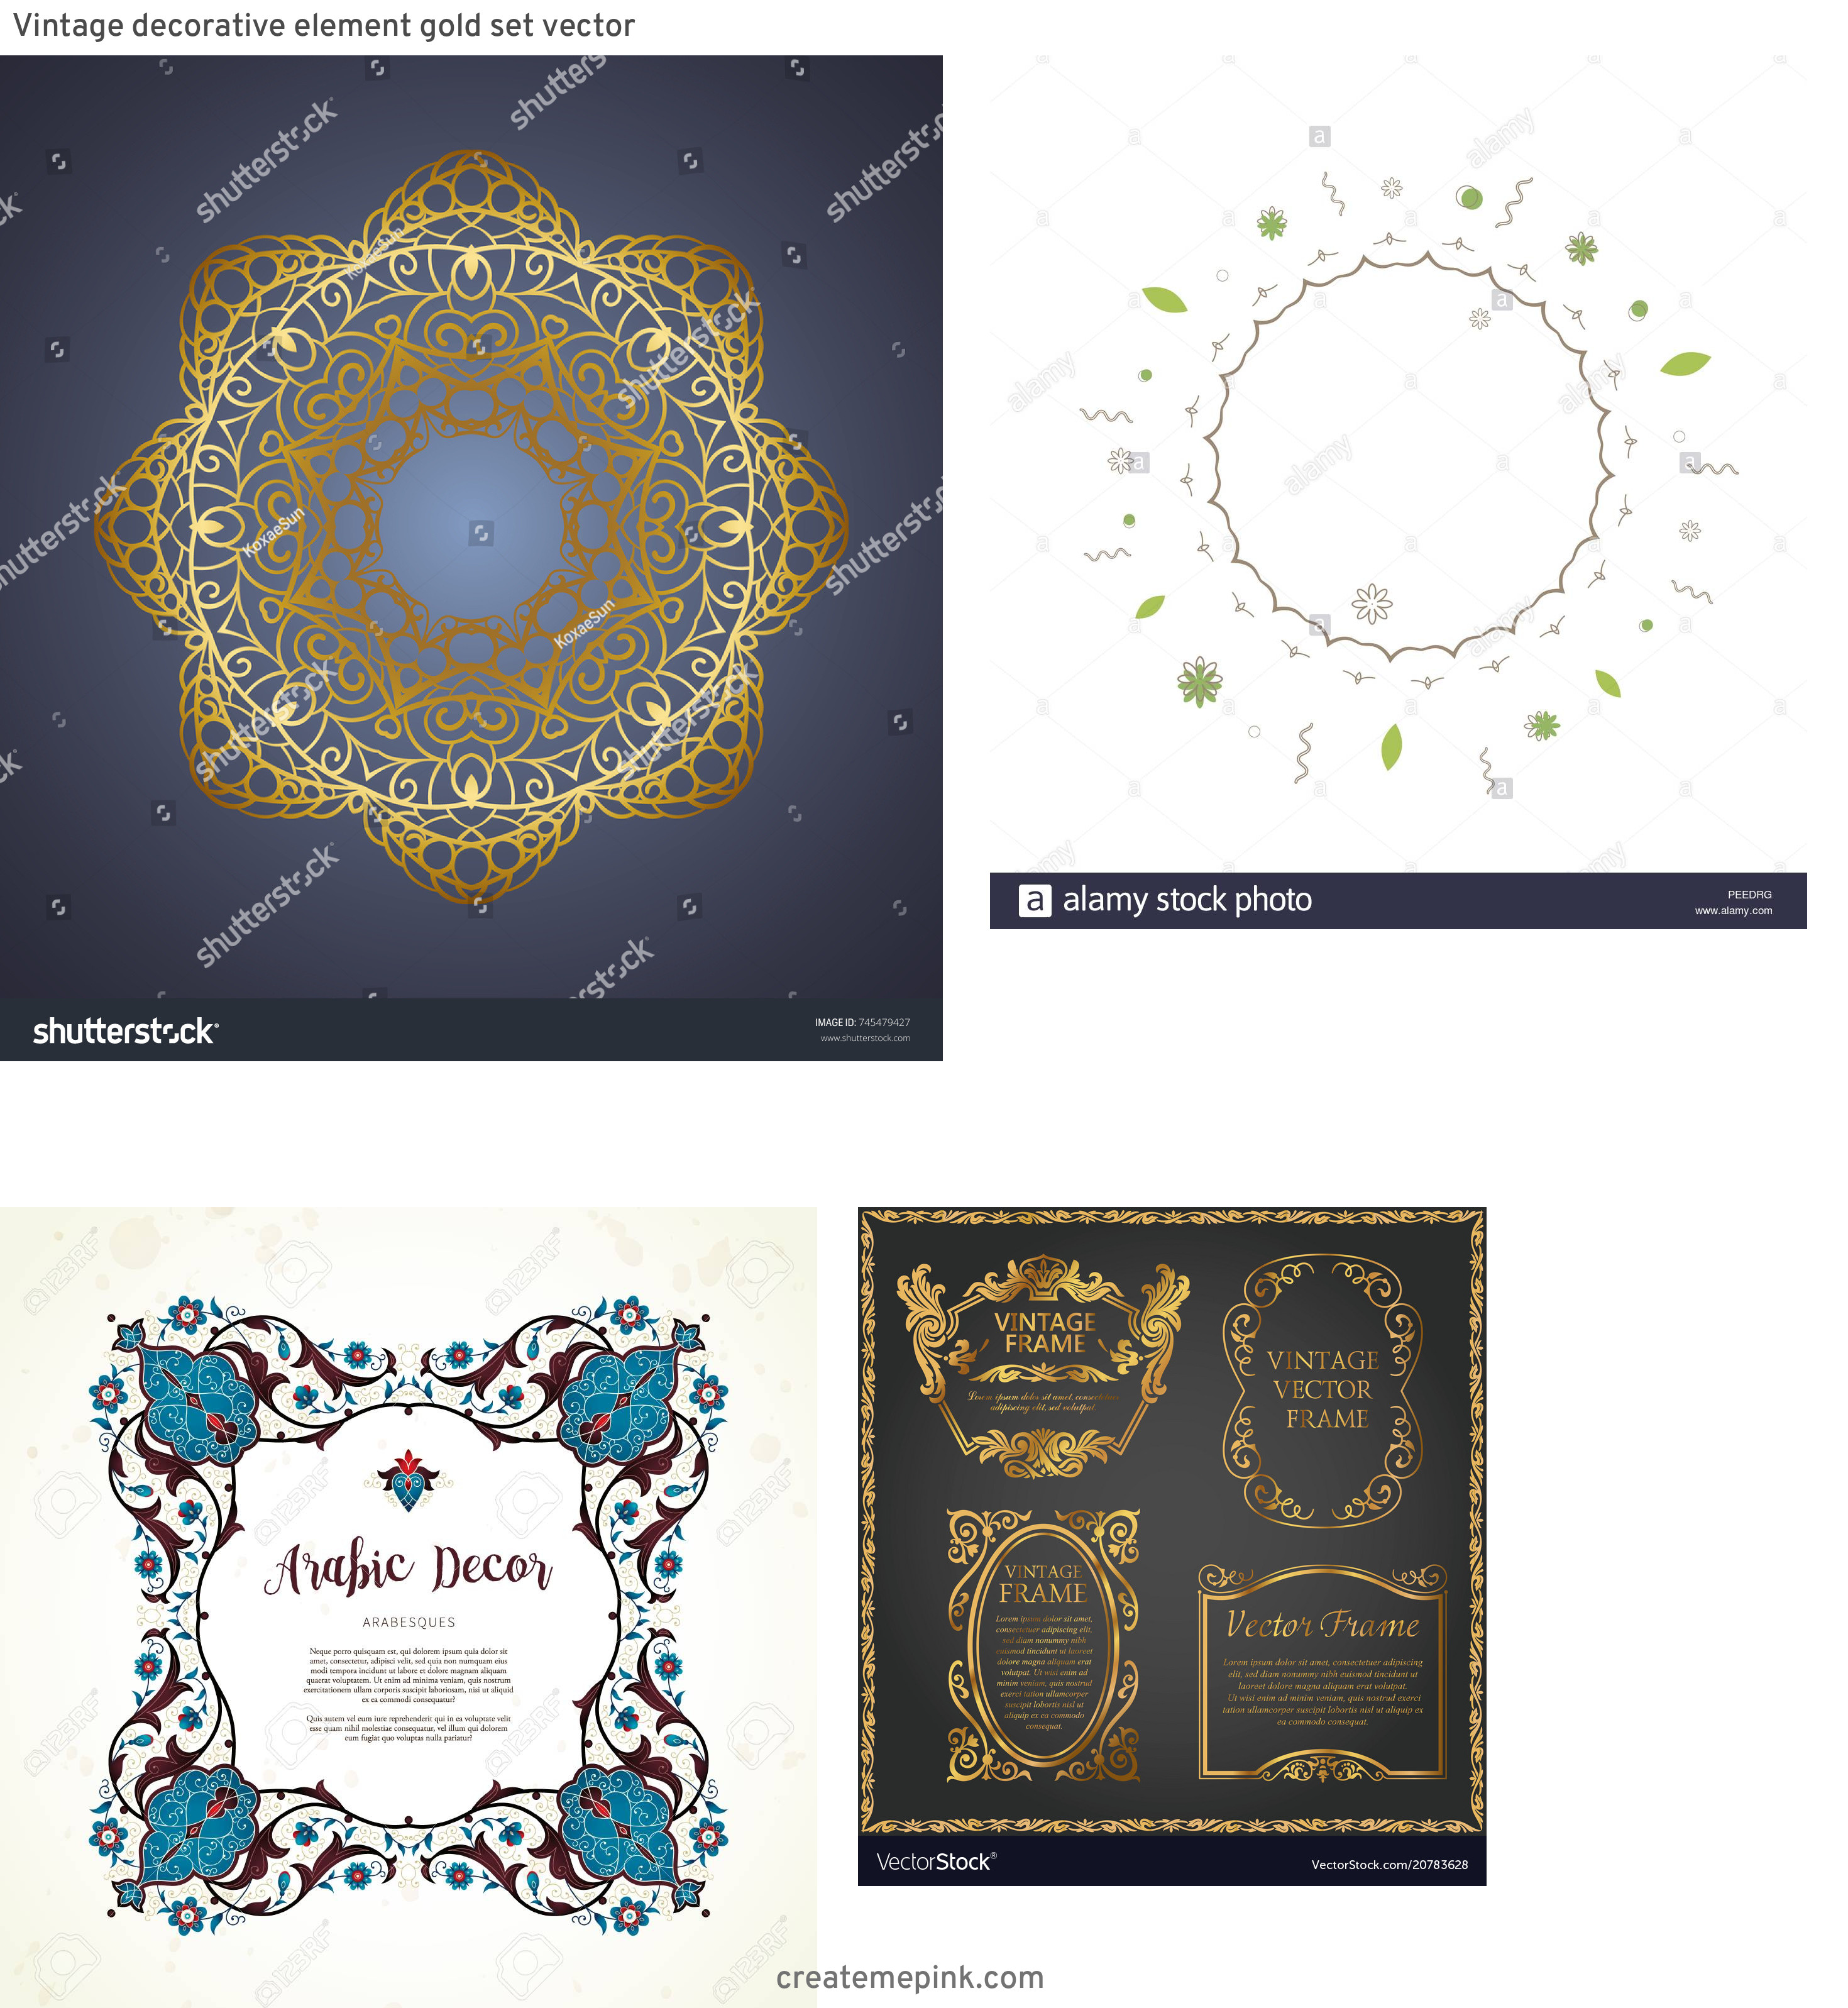 Elements Of Vector Vintage Decorative Frame: Vintage Decorative Element Gold Set Vector